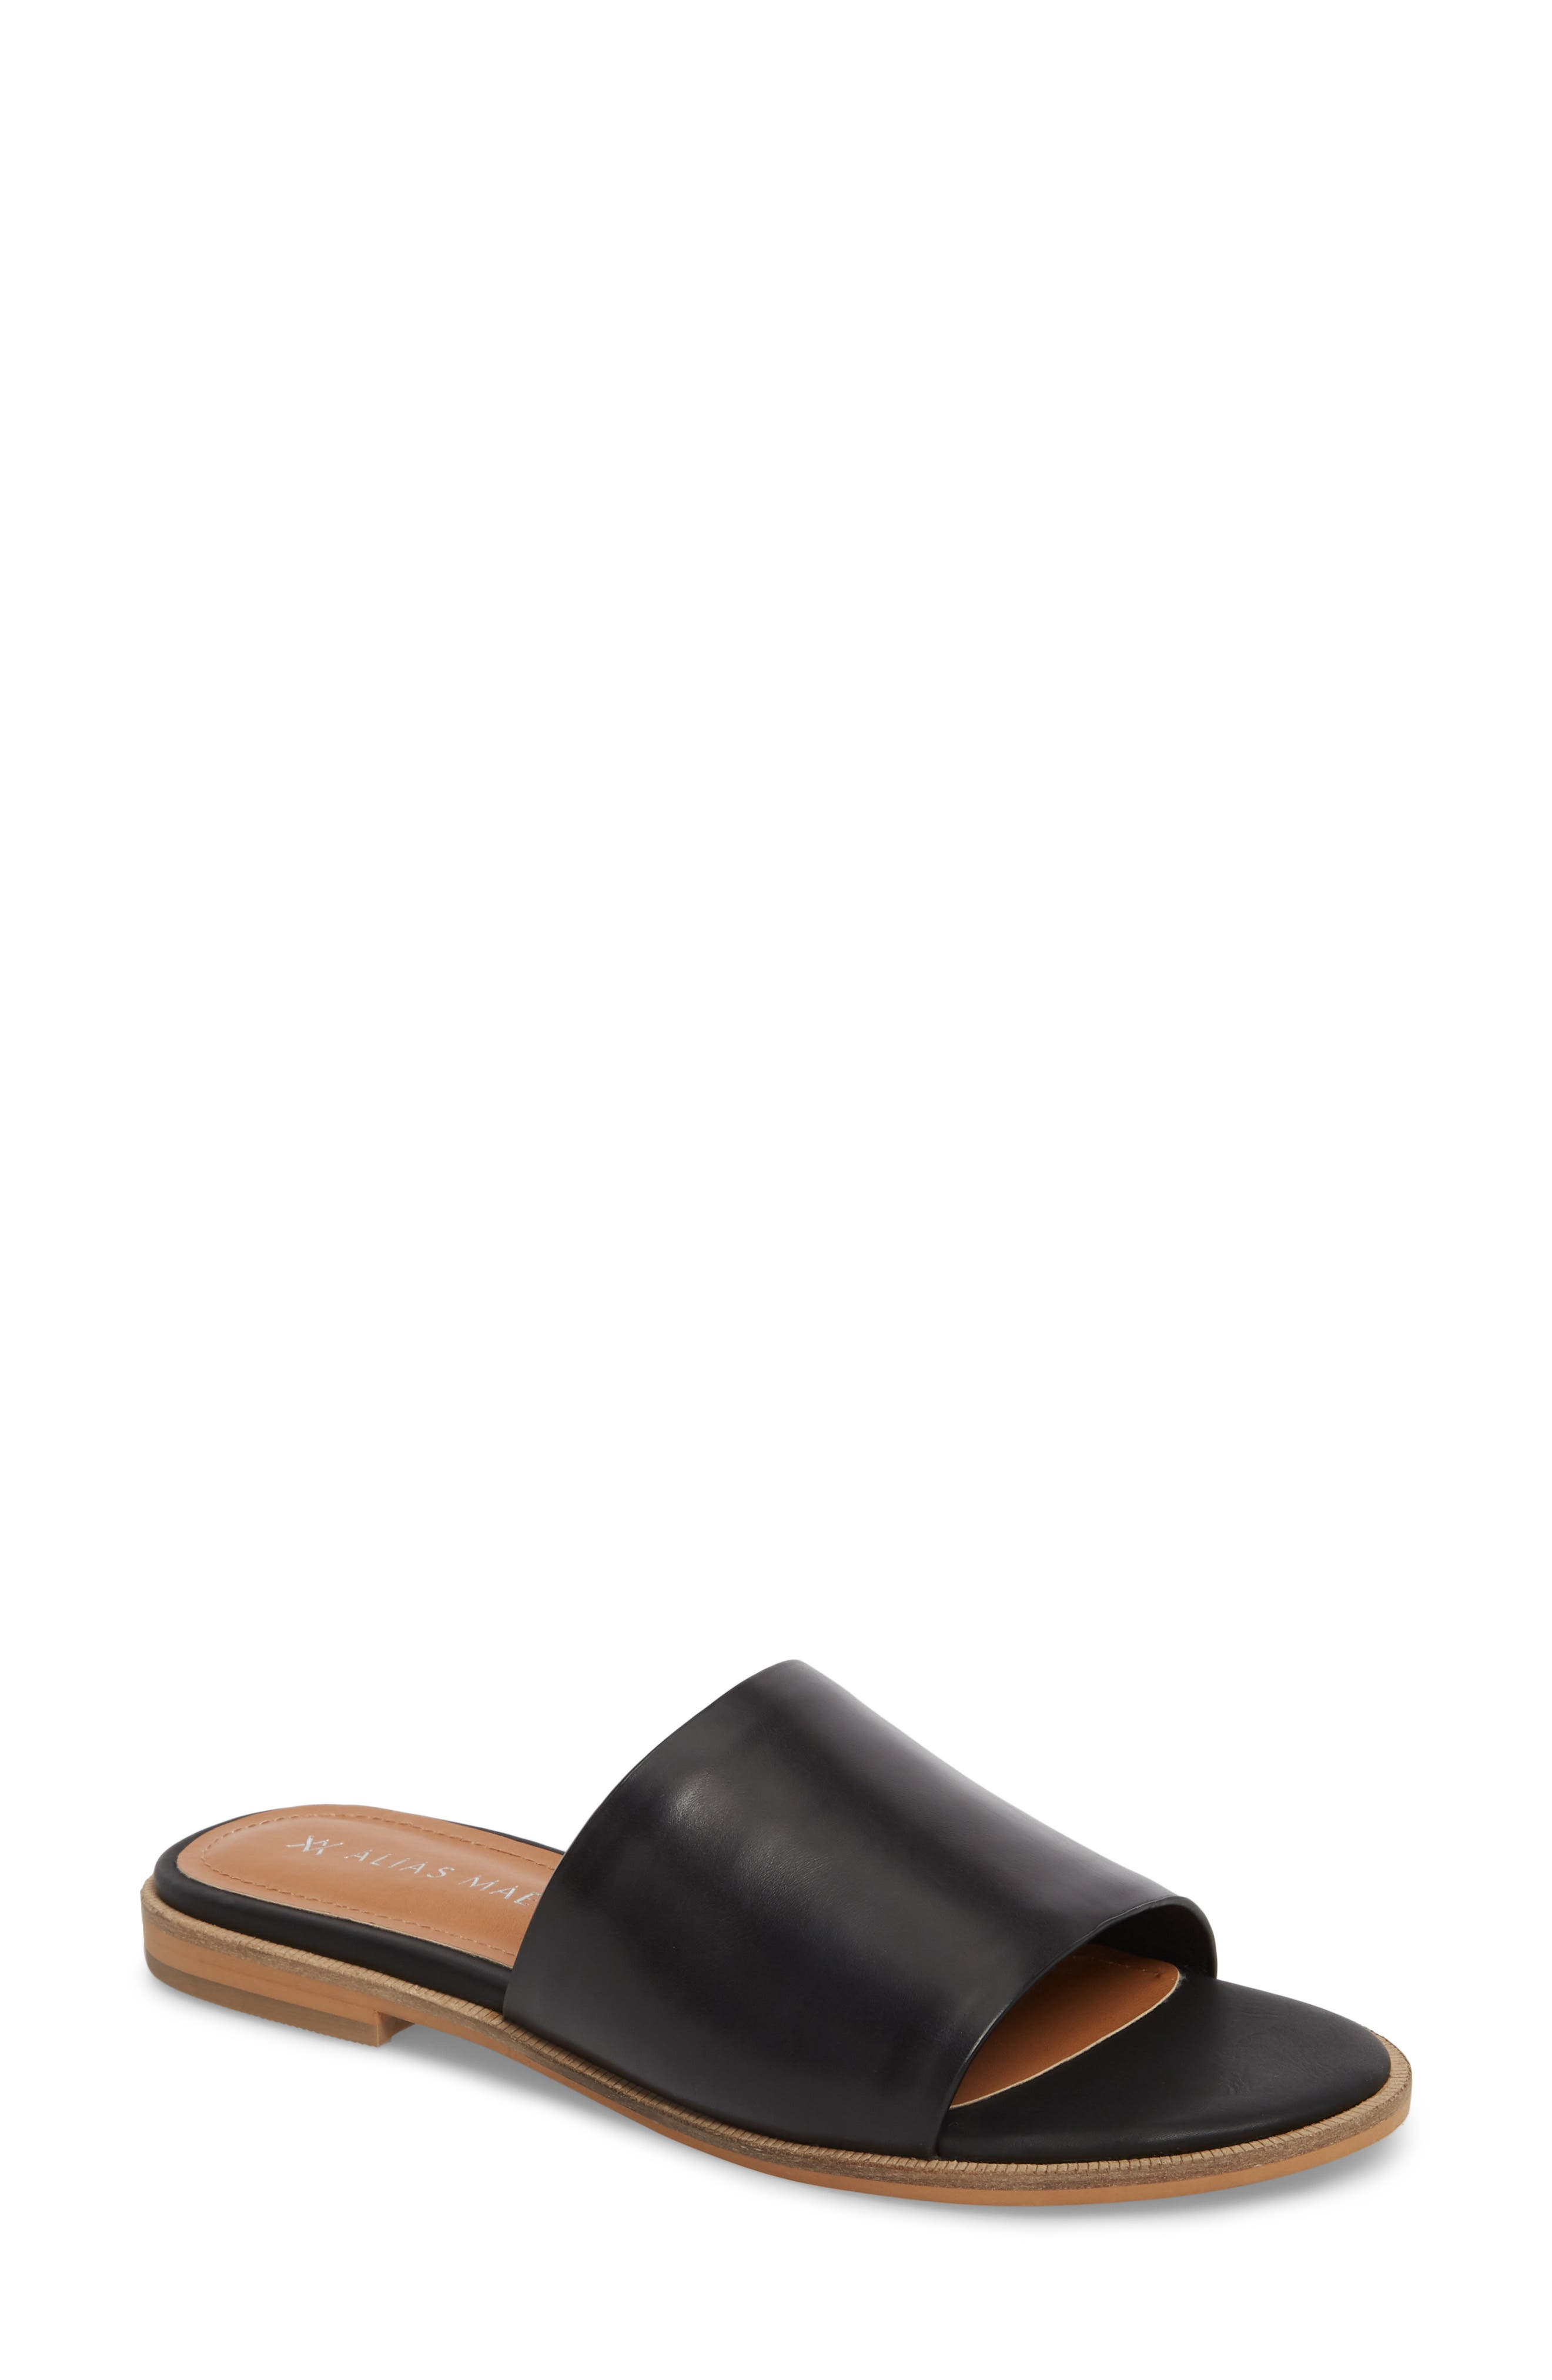 Therapy Slide Sandal,                             Main thumbnail 1, color,                             BLACK LEATHER